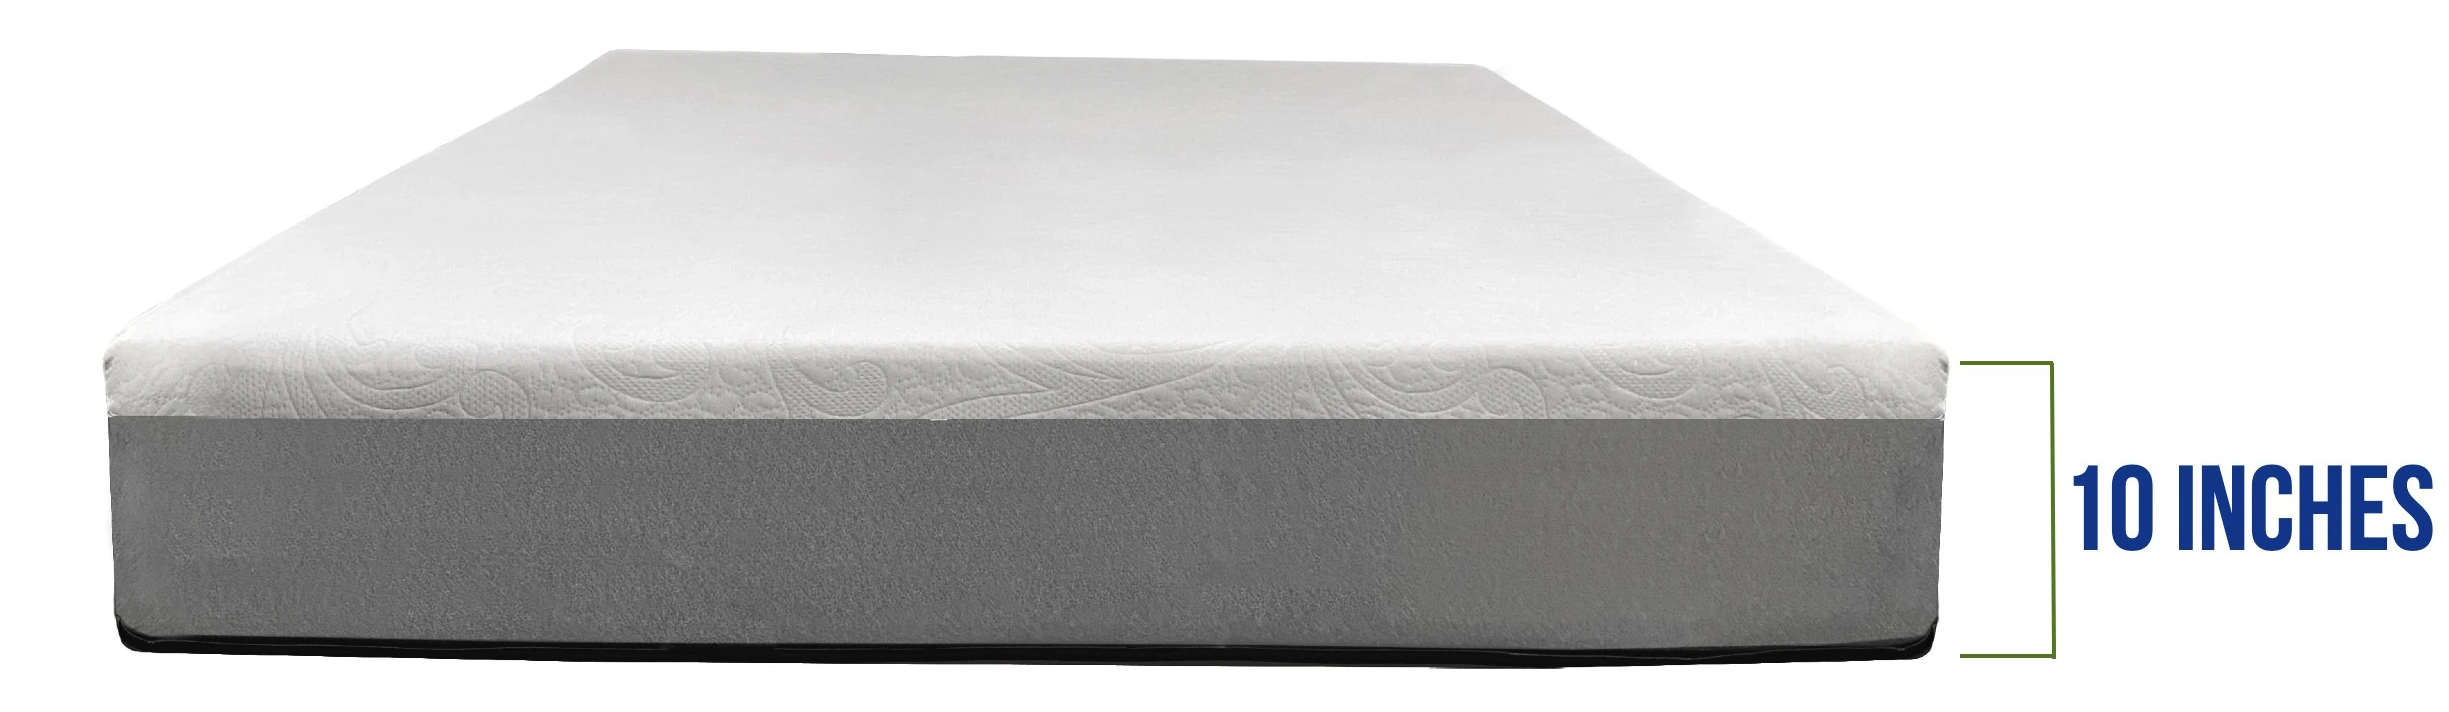 The Beauty Series Mattress 12in Thickness